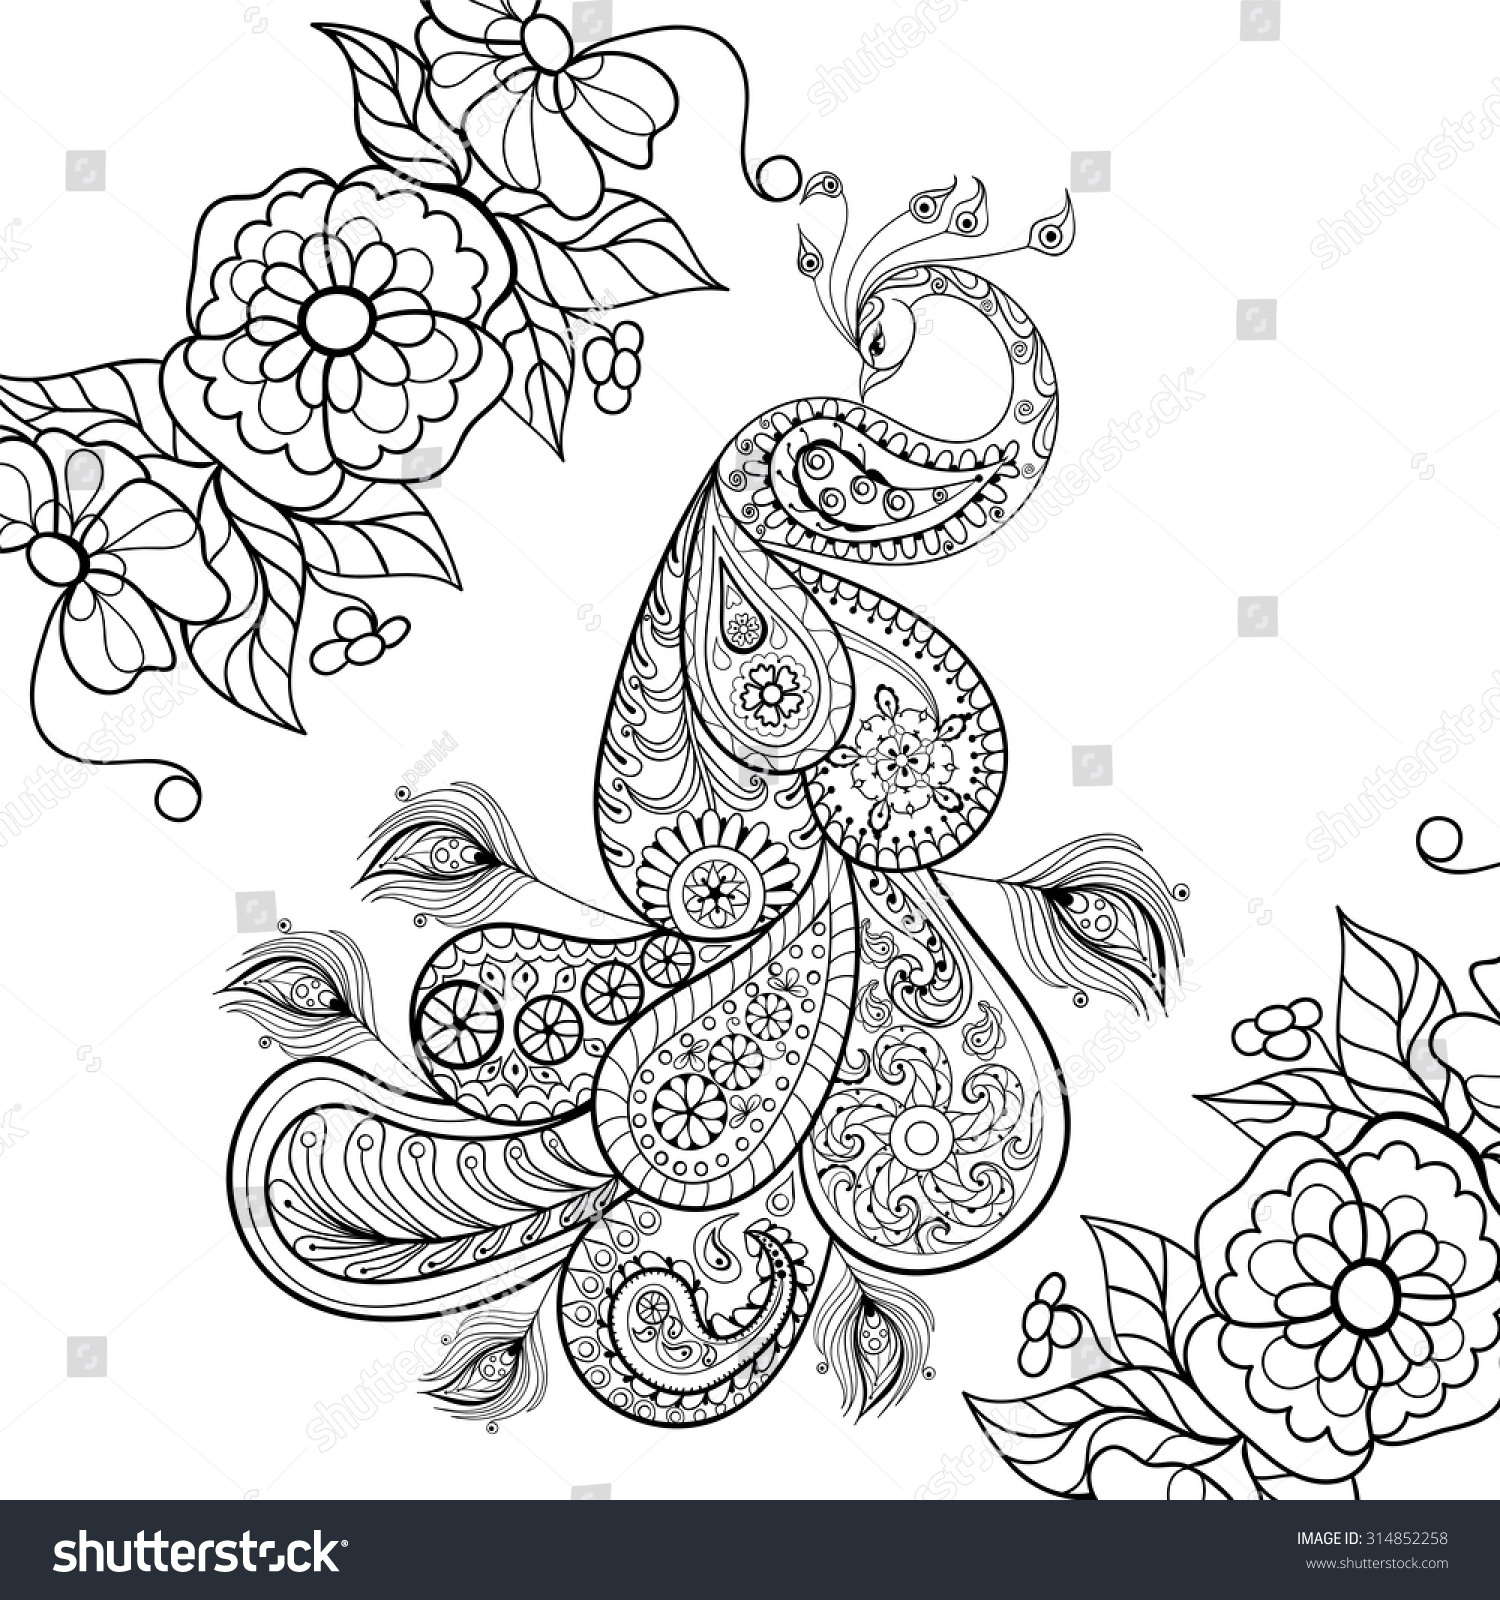 Colourtation anti stress colouring book for adults volume 1 - Anti Stress Colouring Page Zentangle Peacock Totem In Flowersfor Adult Anti Stress Coloring Page For